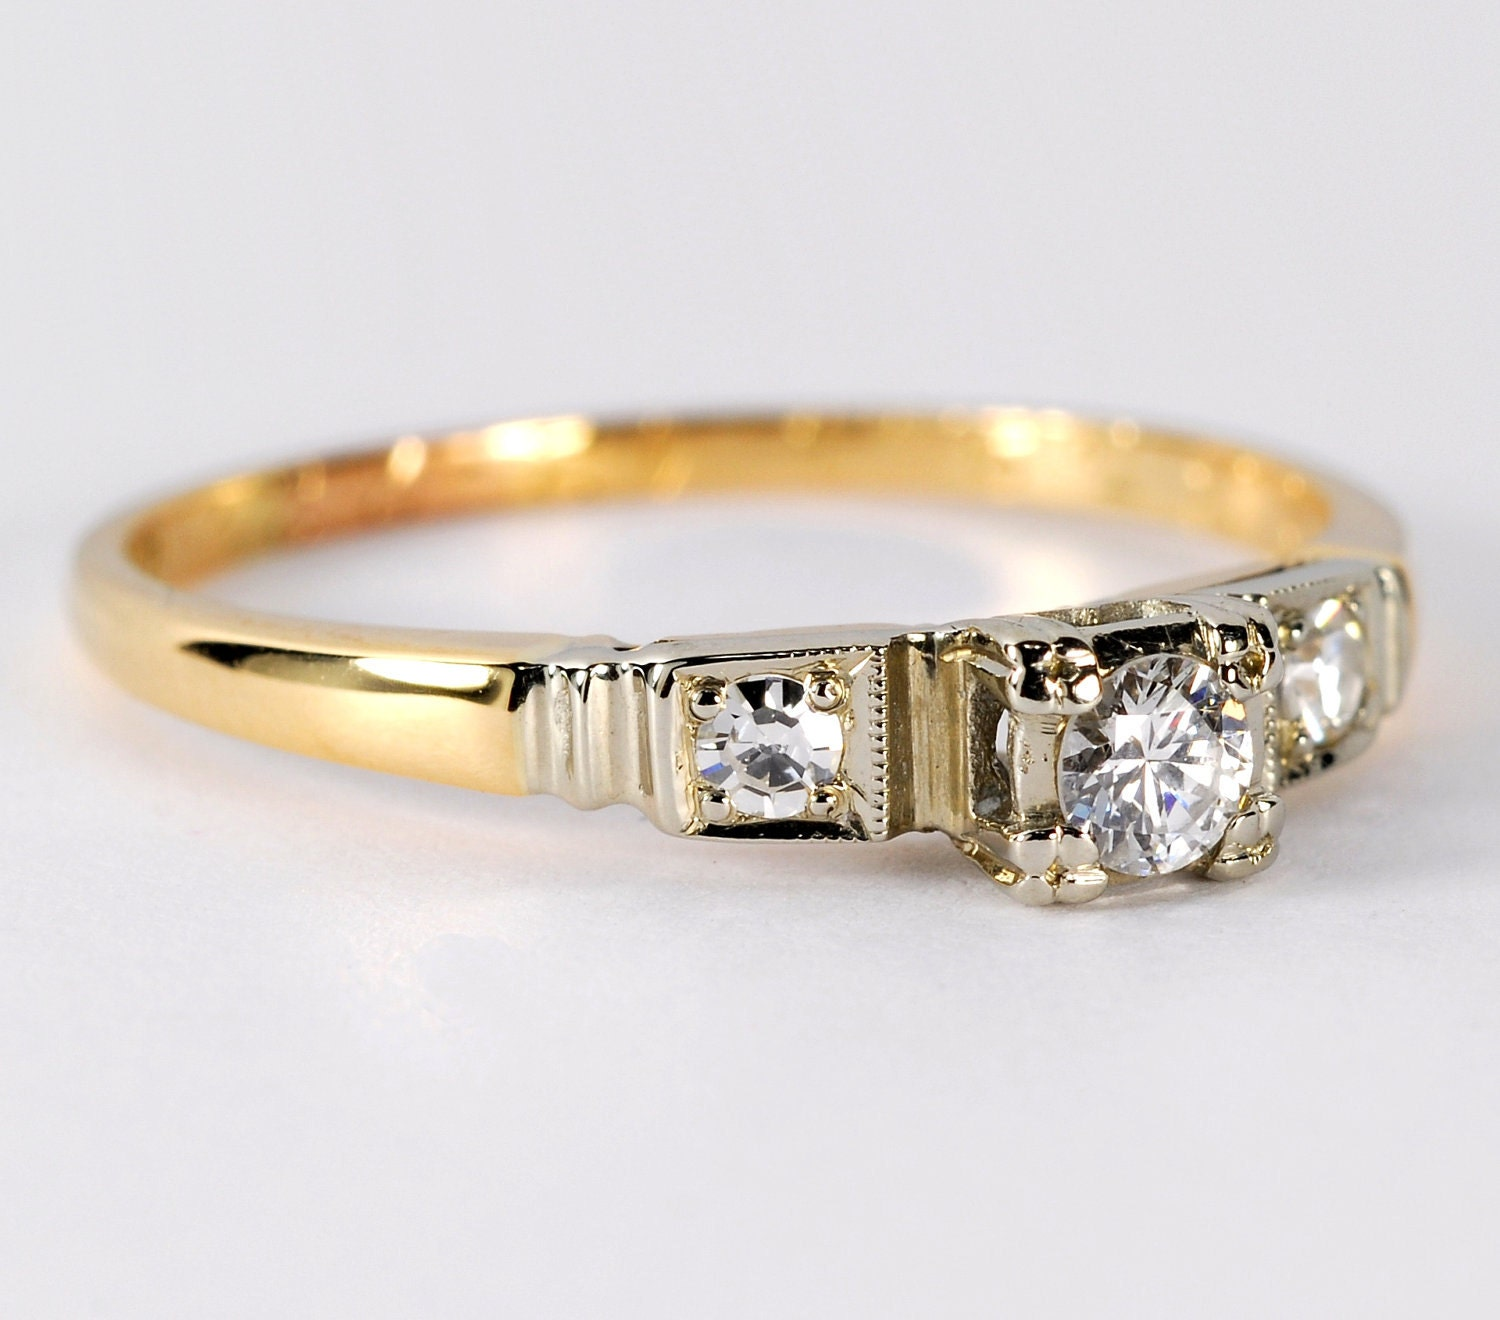 Vintage 3 Stone Diamond Engagement Ring 14kt Yellow Gold With